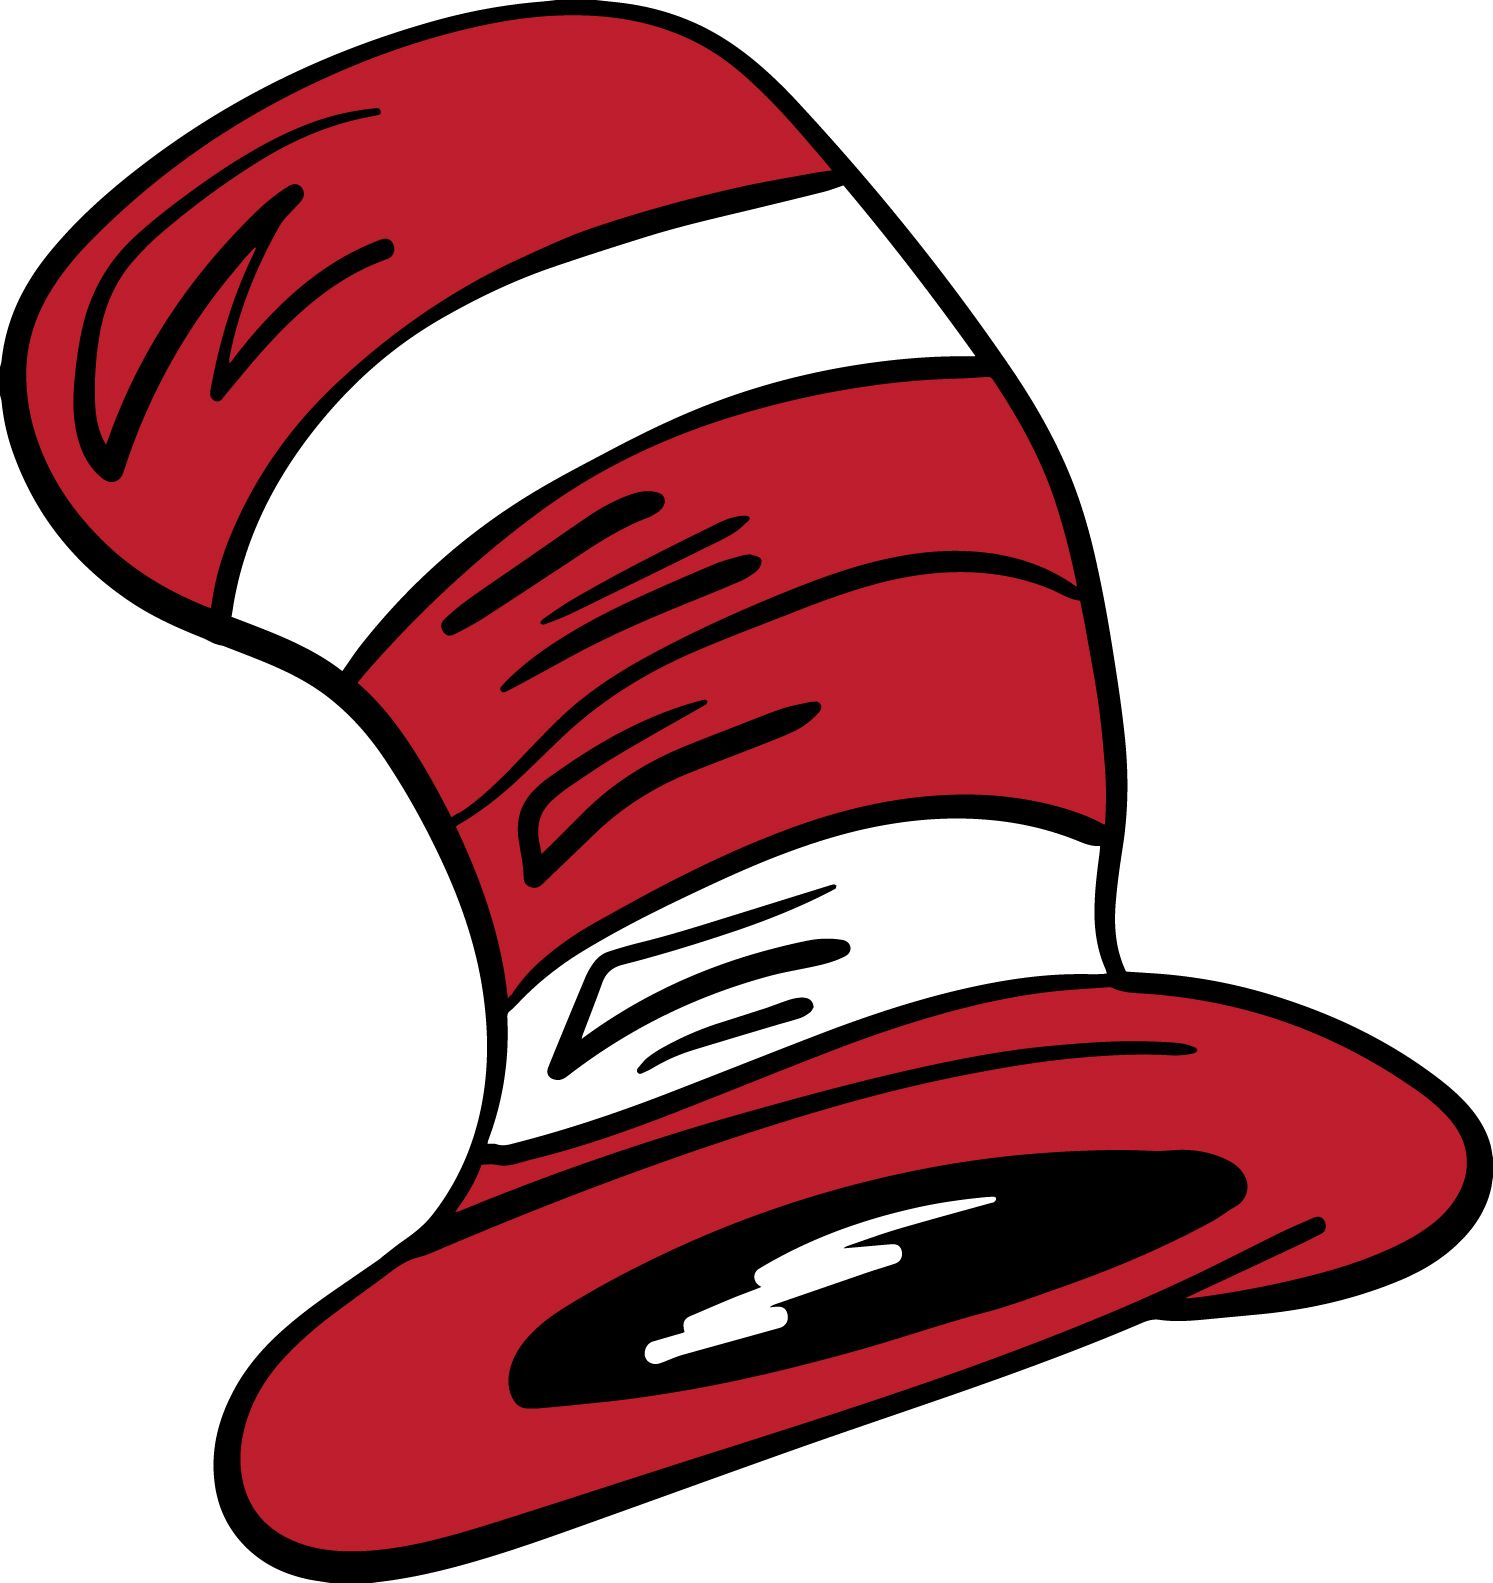 Dr Seuss Hat Clipart At Getdrawings